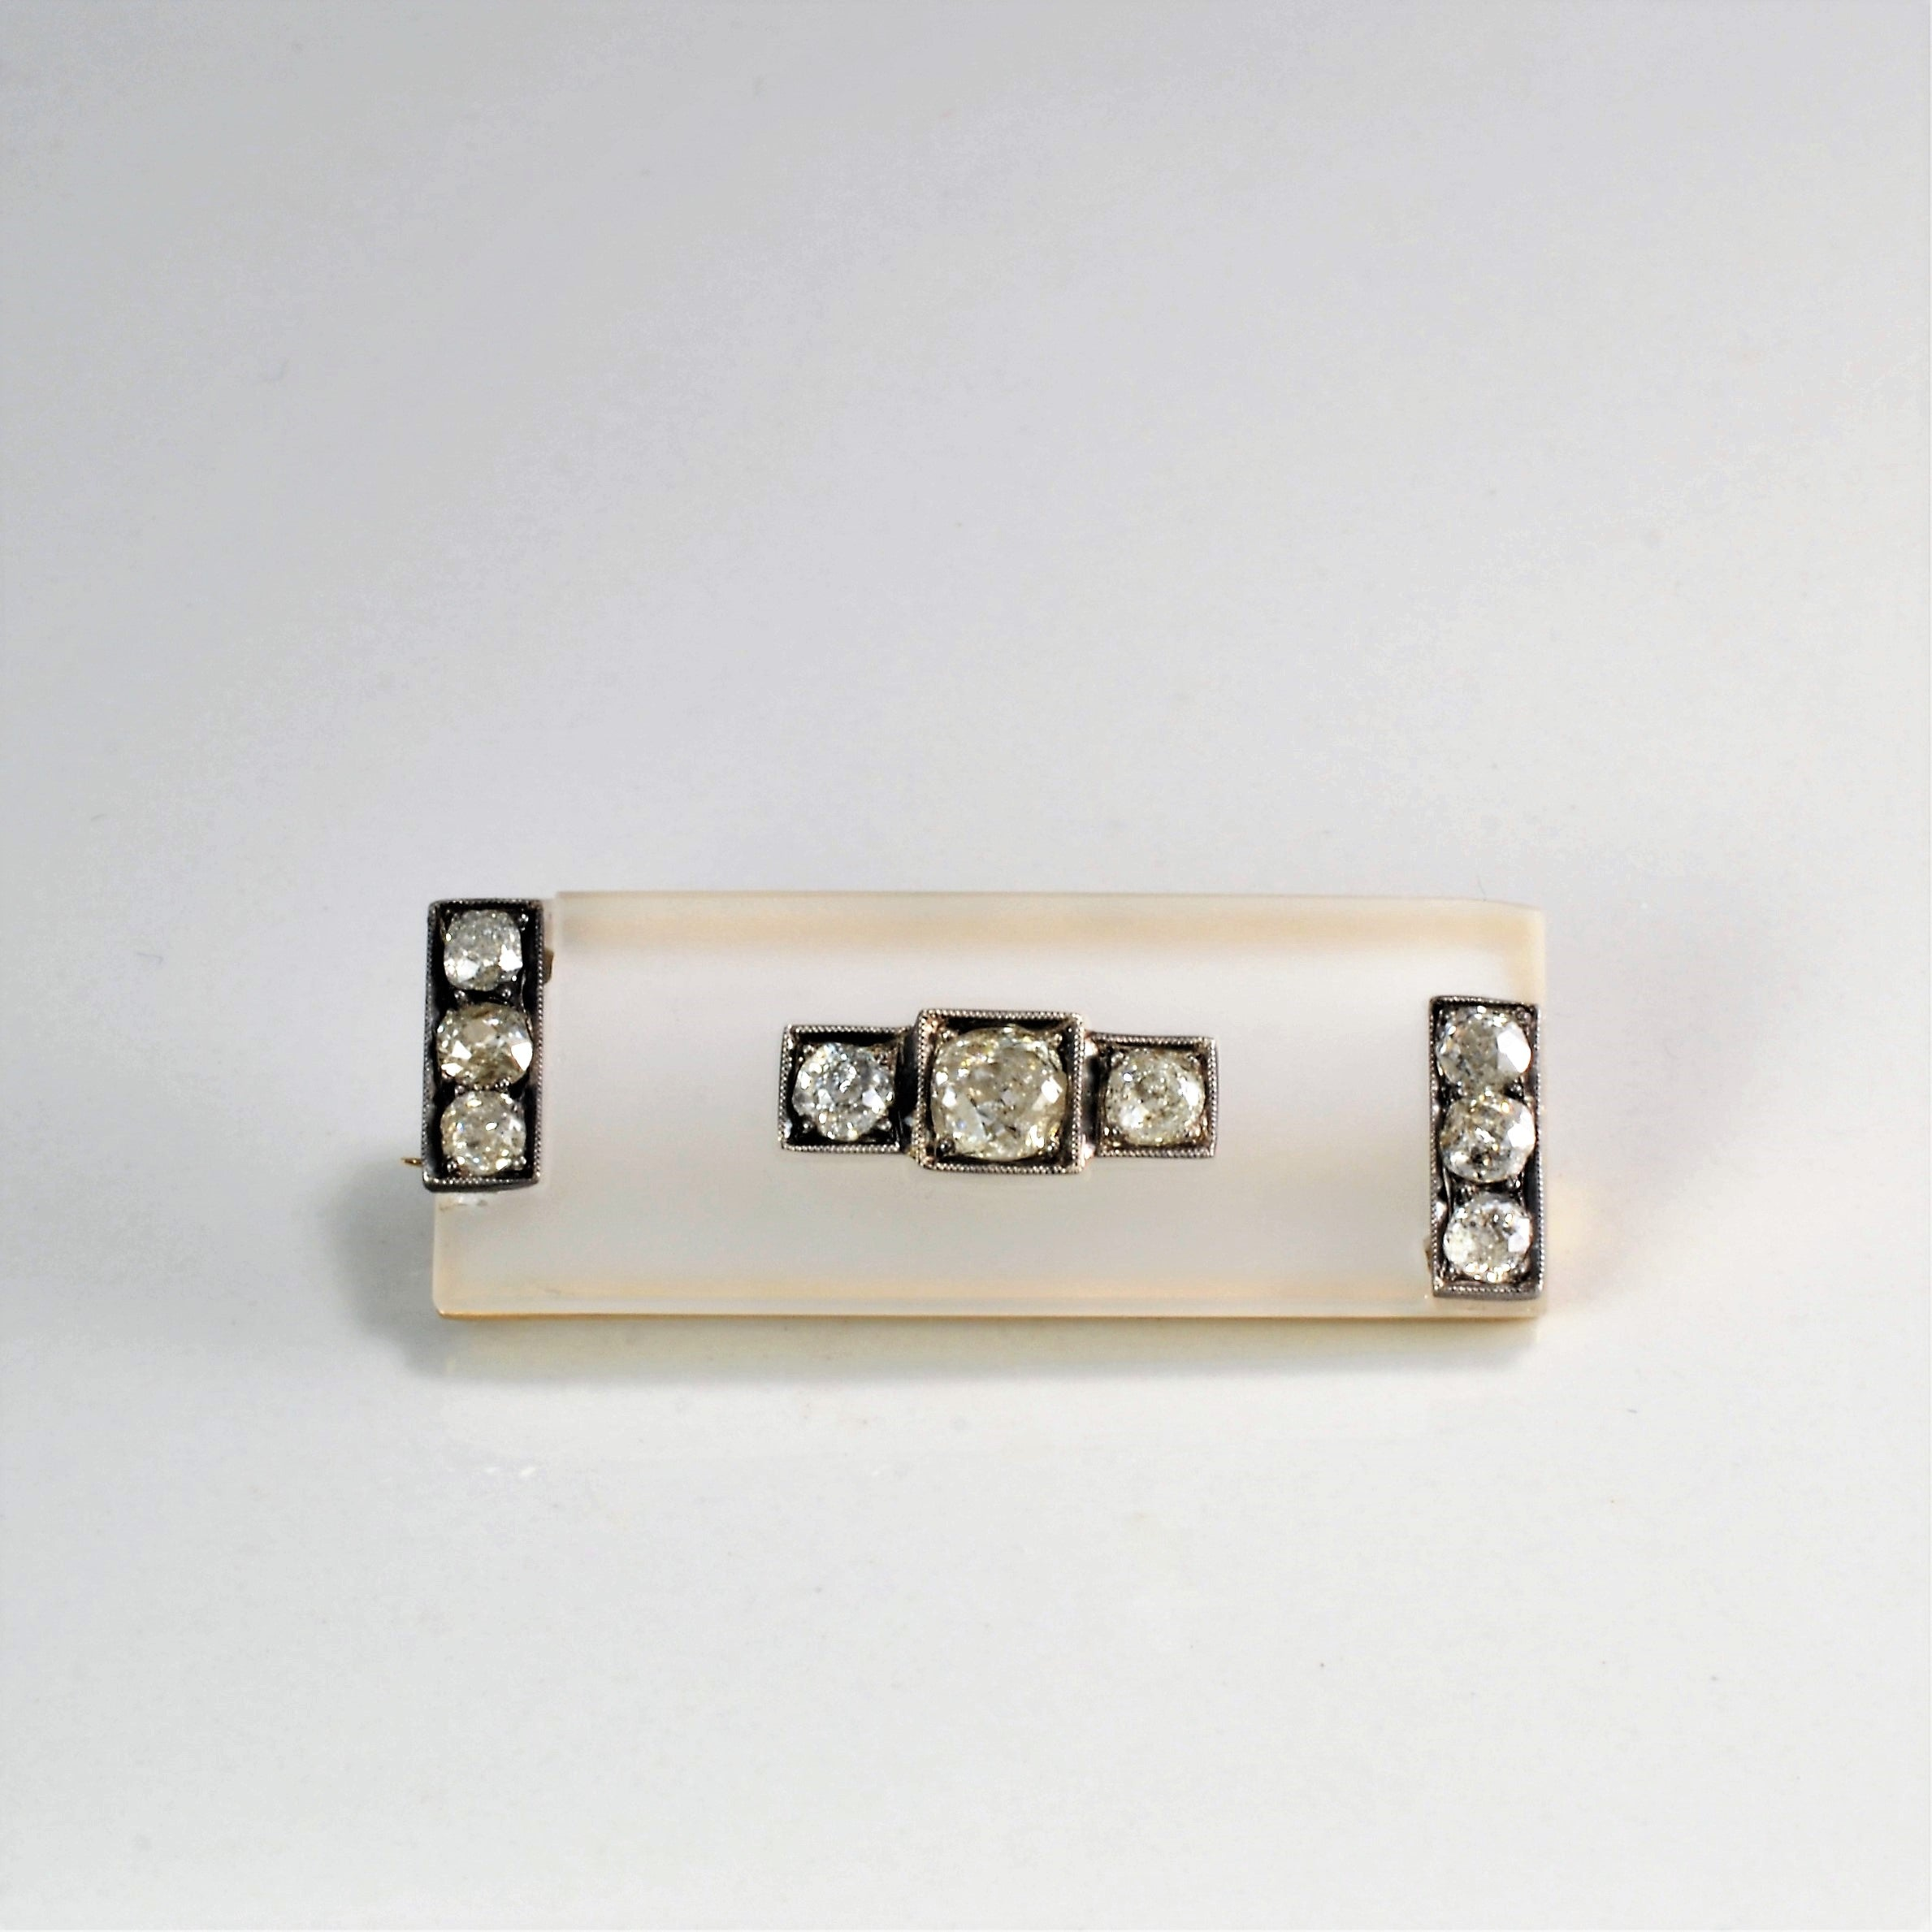 Art Deco Diamond & Camphor Glass Brooch | 0.86 ctw |